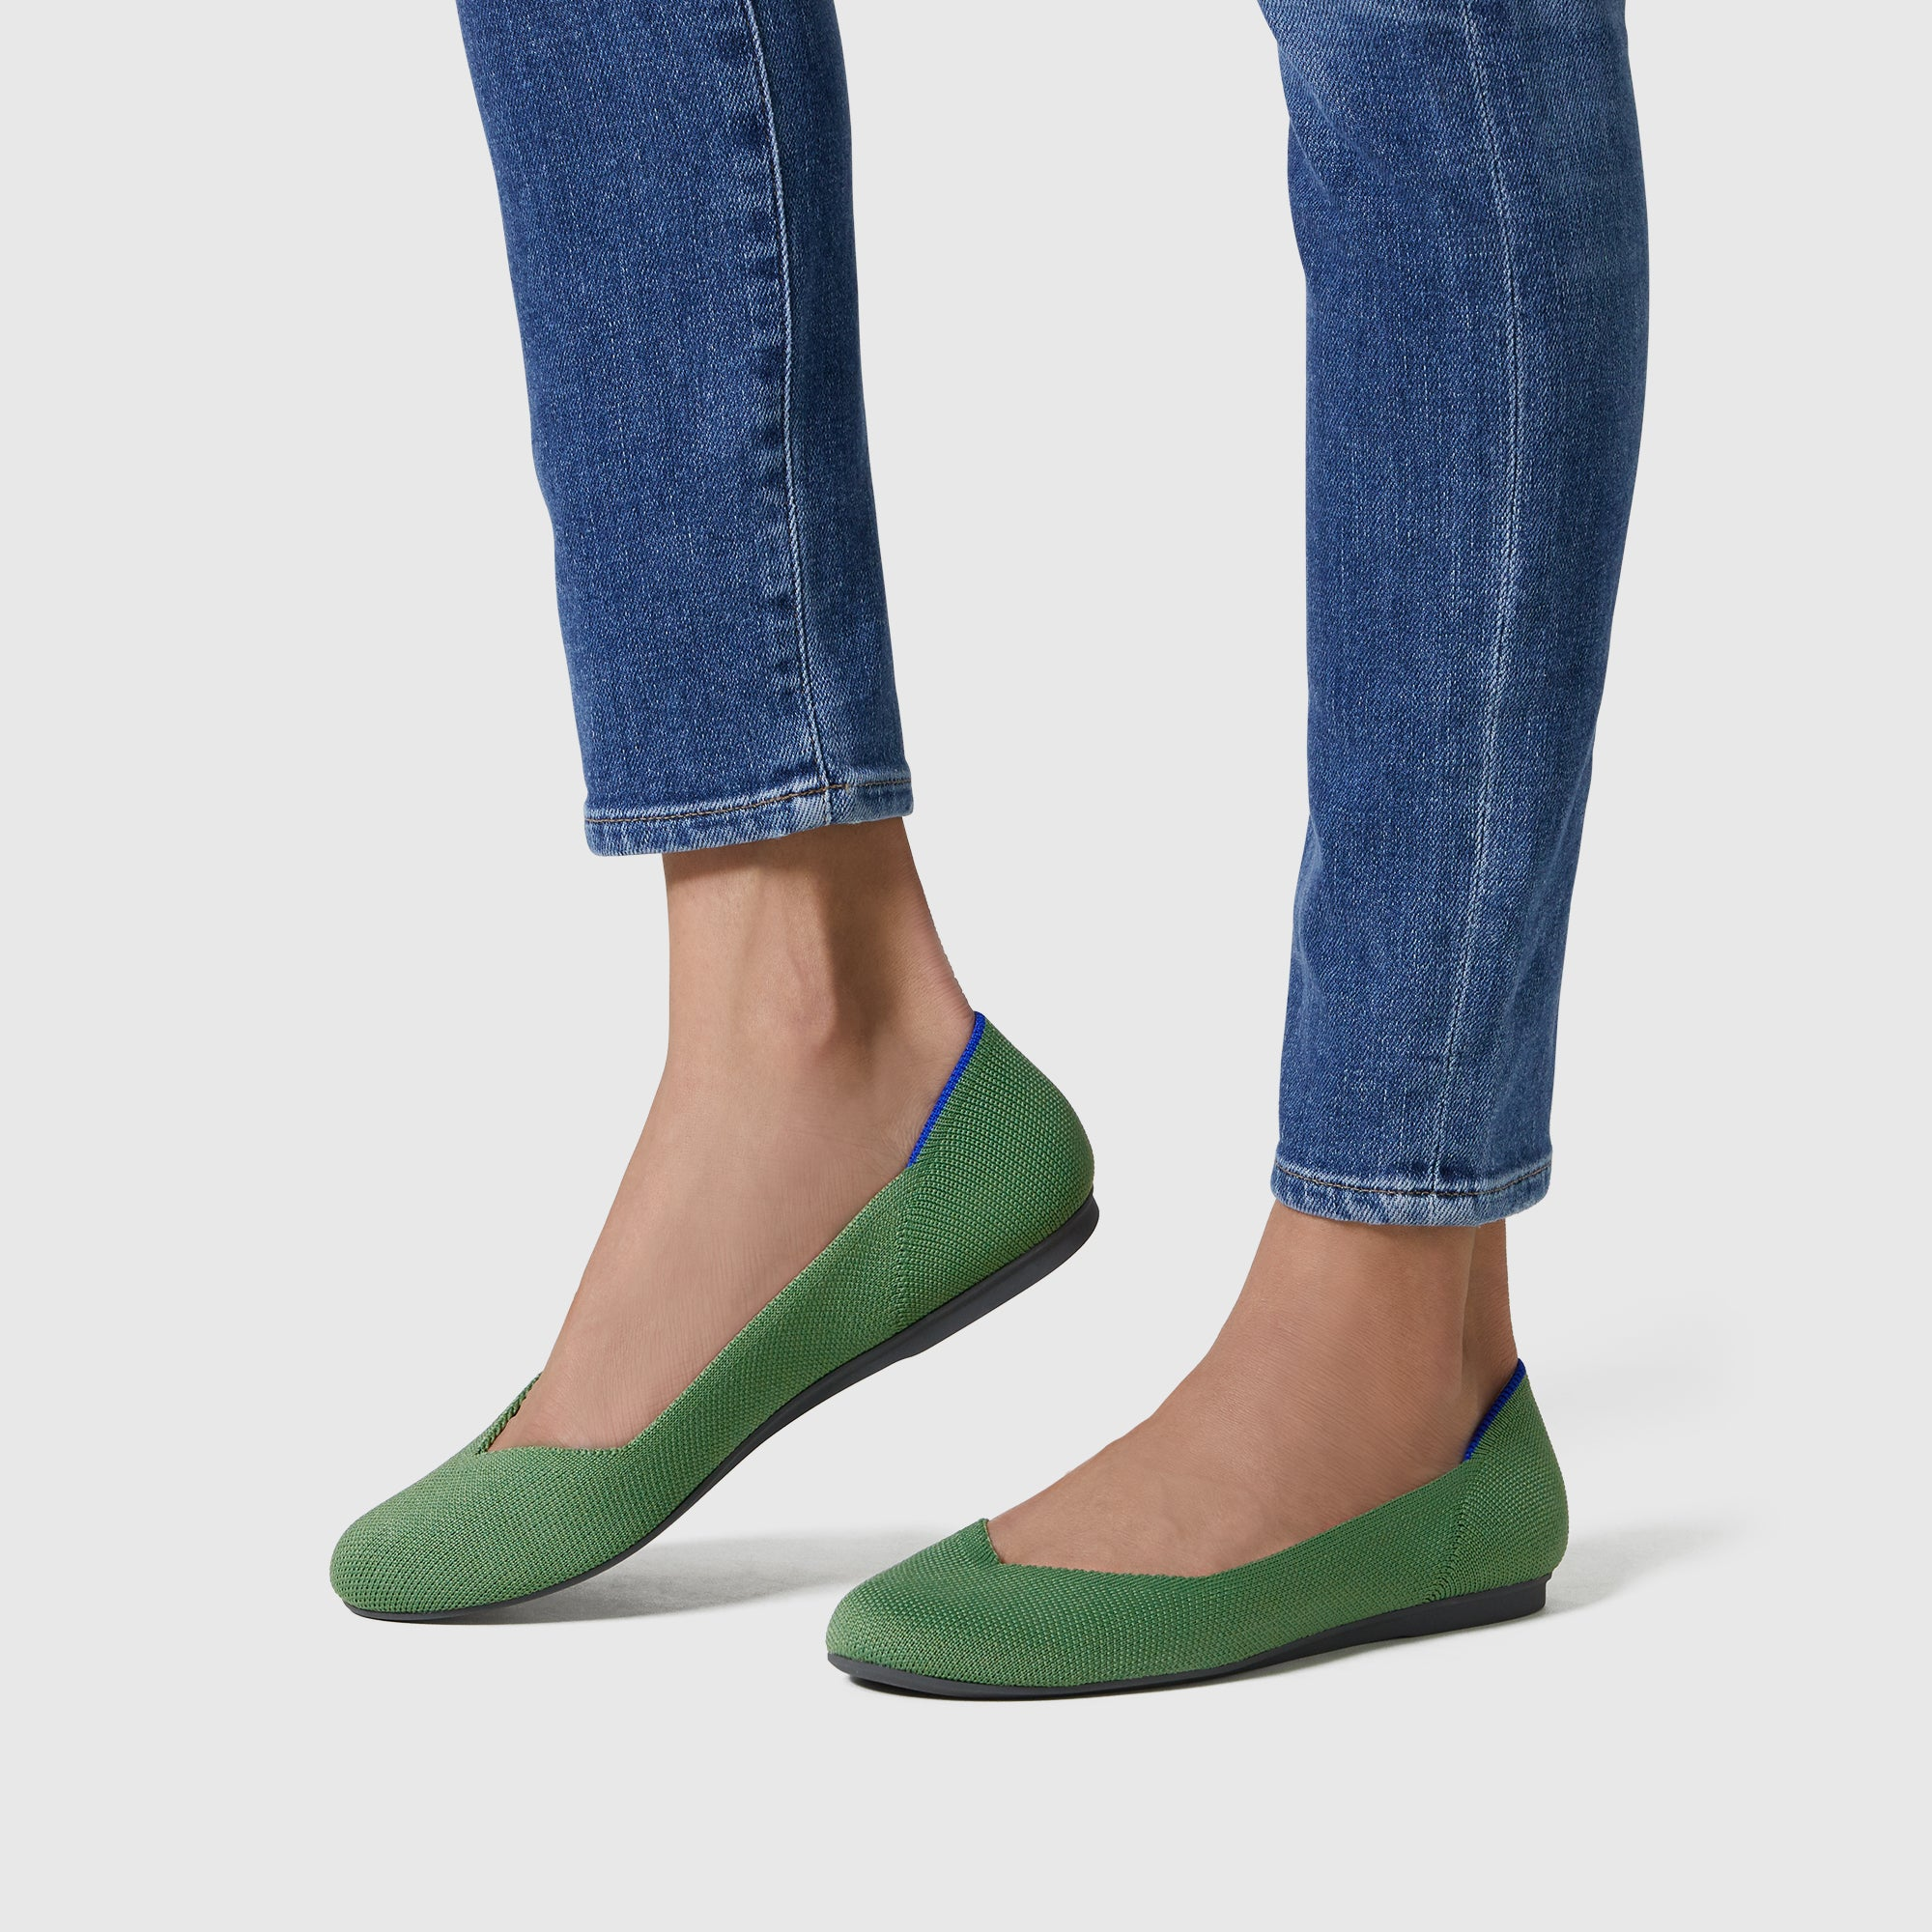 The Flat round toe shoe in Willow shown on-model at an angle.